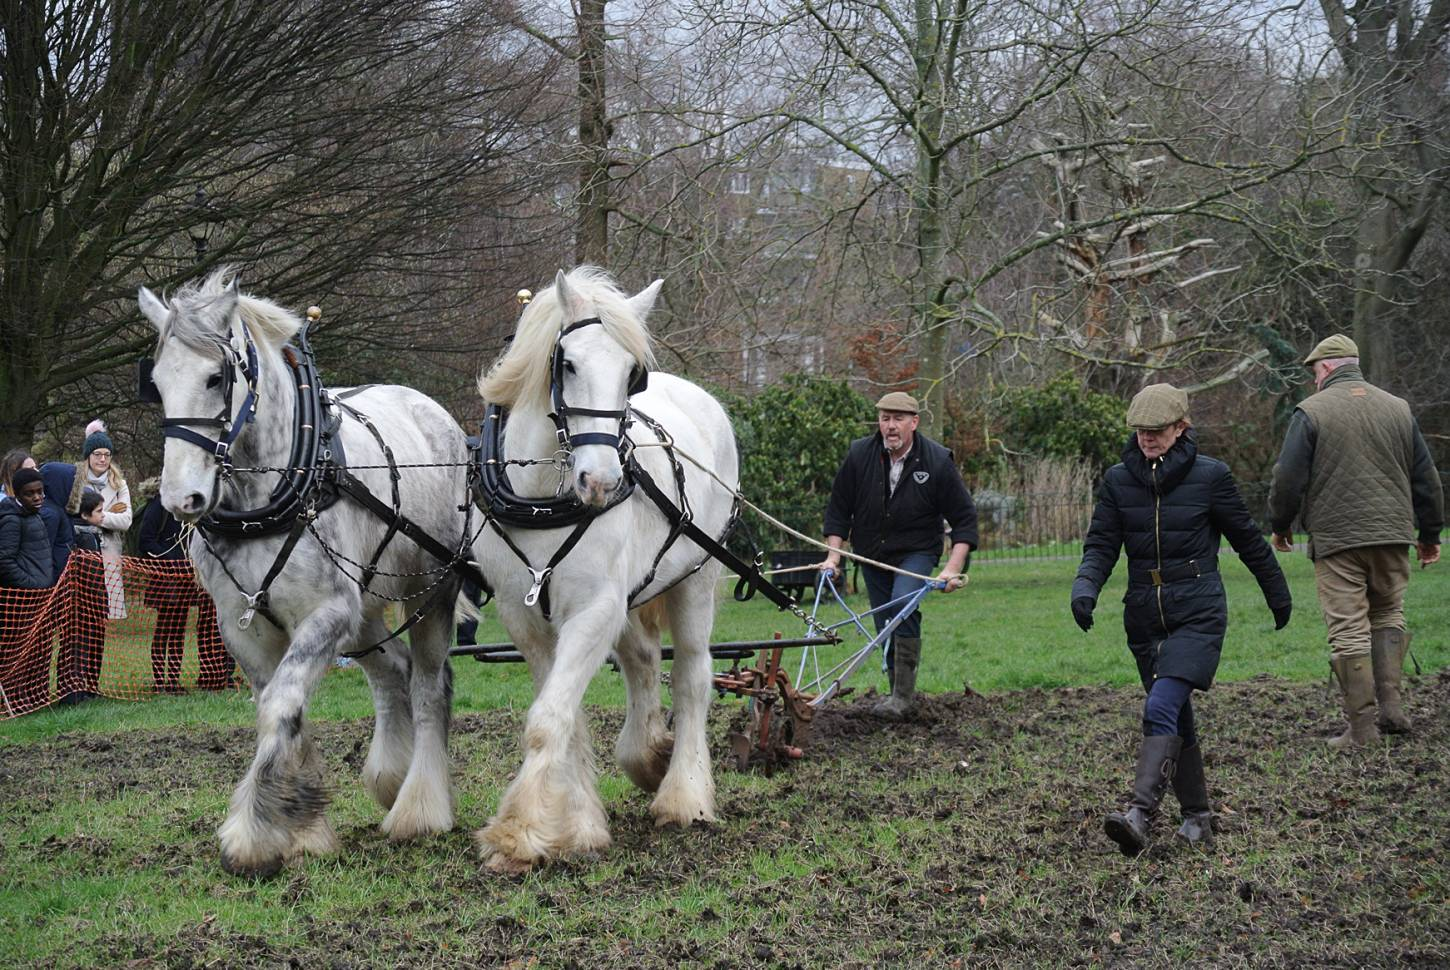 Shire horses, Heath and Nobby with ploughman Tom Nixon from <a href='http://www.operationcentaur.com/' target='_blank'>Operation Centaur</a> come to plough the <a href='https://twitter.com/ruskinparkse5?lang=en' target='_blank'>Ruskin Park</a> wheat patch. Image: Marie Cullen - 12:13pm&nbsp;9<sup>th</sup>&nbsp;Feb.&nbsp;'18